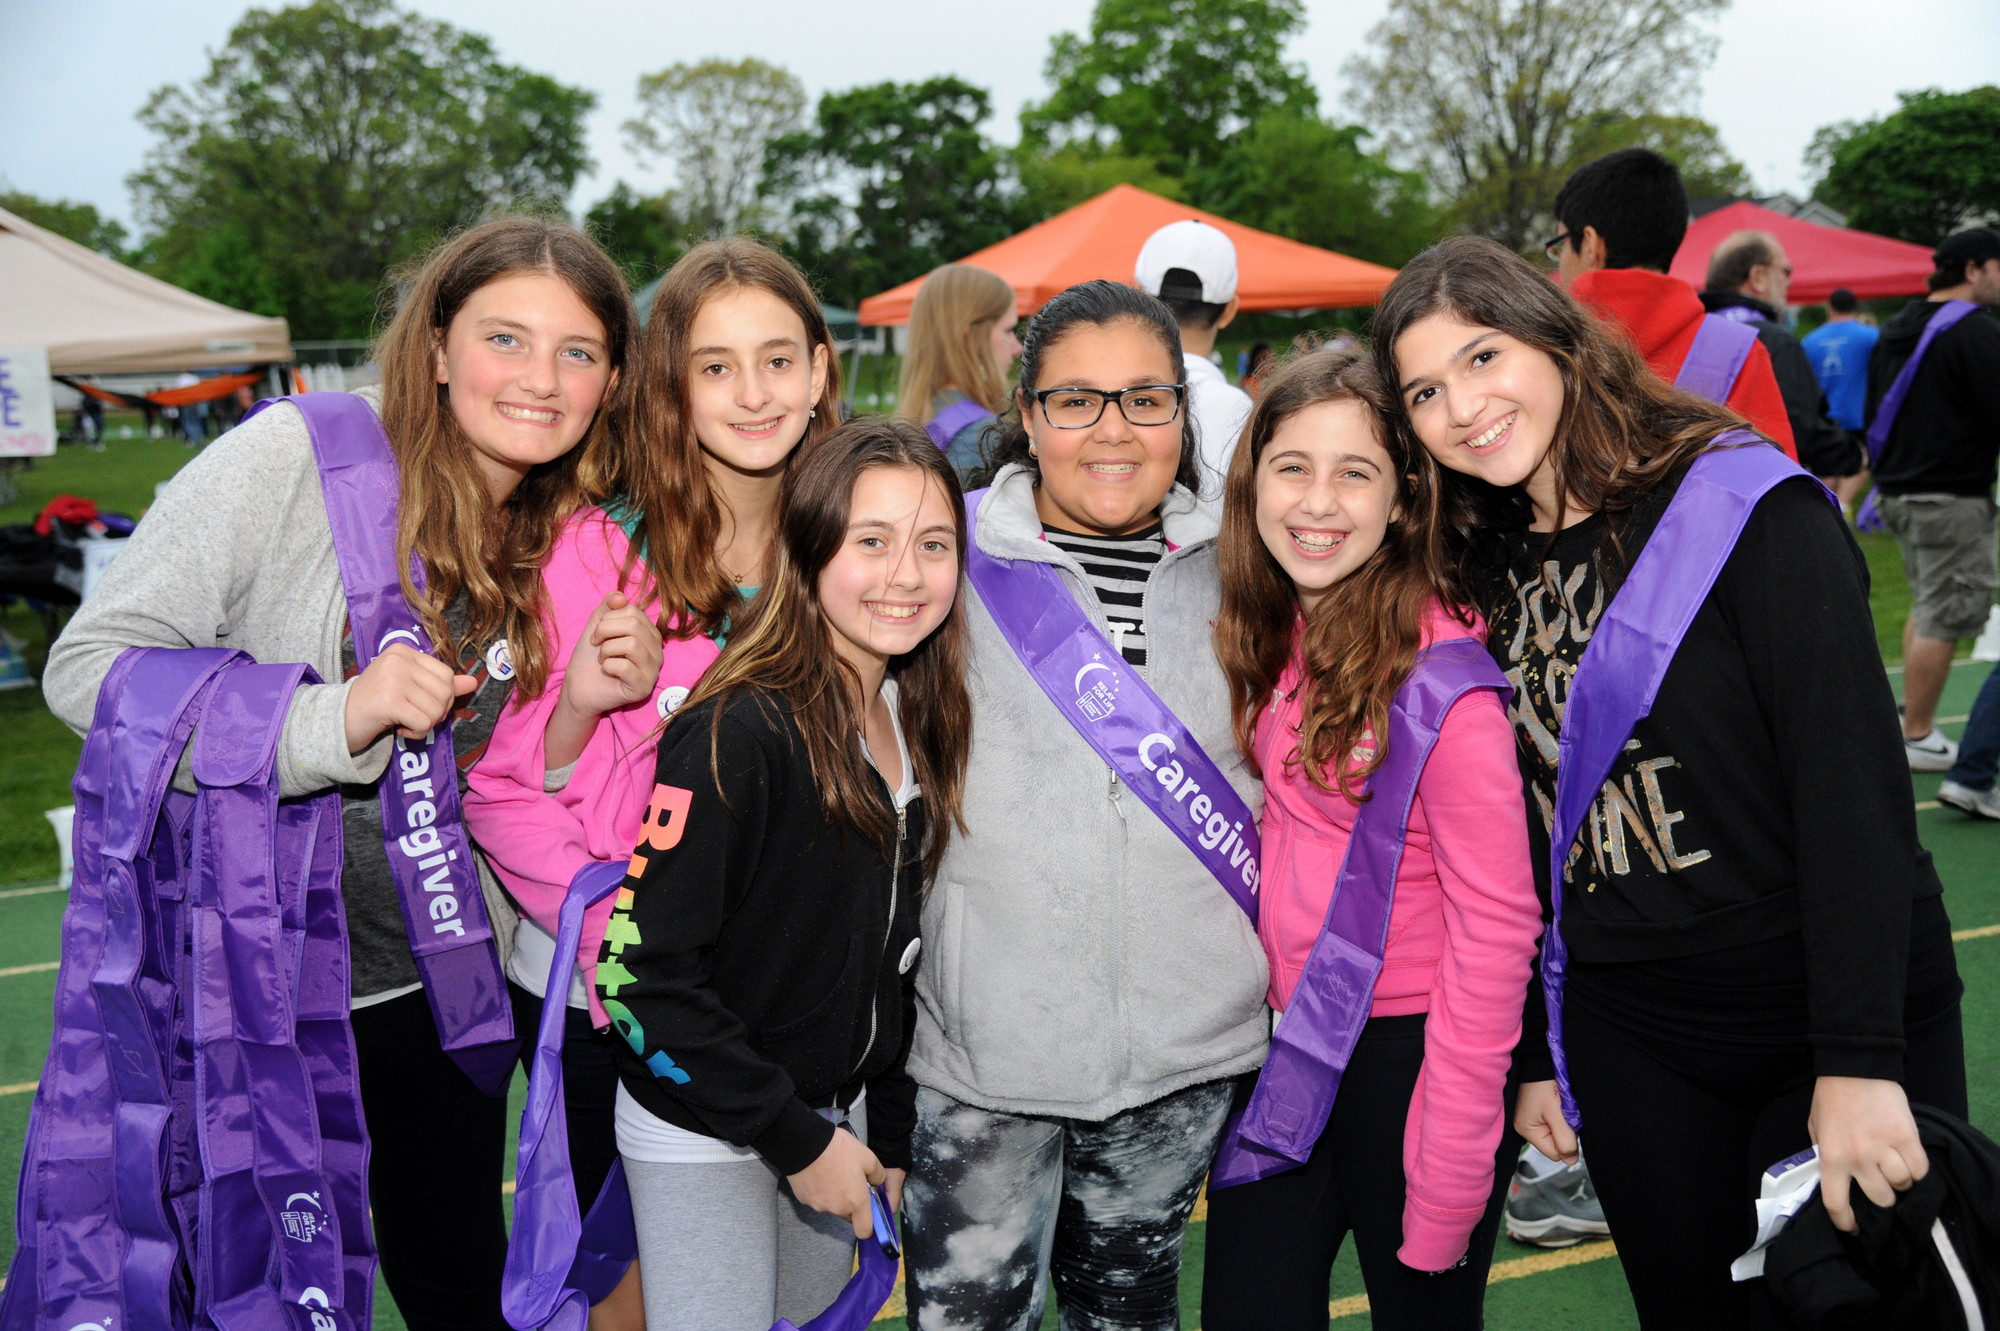 Woodmere Middle School Students Hailee Elias, 12, Gabby Brailouskiy, Alisa Feygis, all 12, Madison Cosentino, 11, and Ashley Shanaband  Julia Gueli, both 12, walked as caregivers.